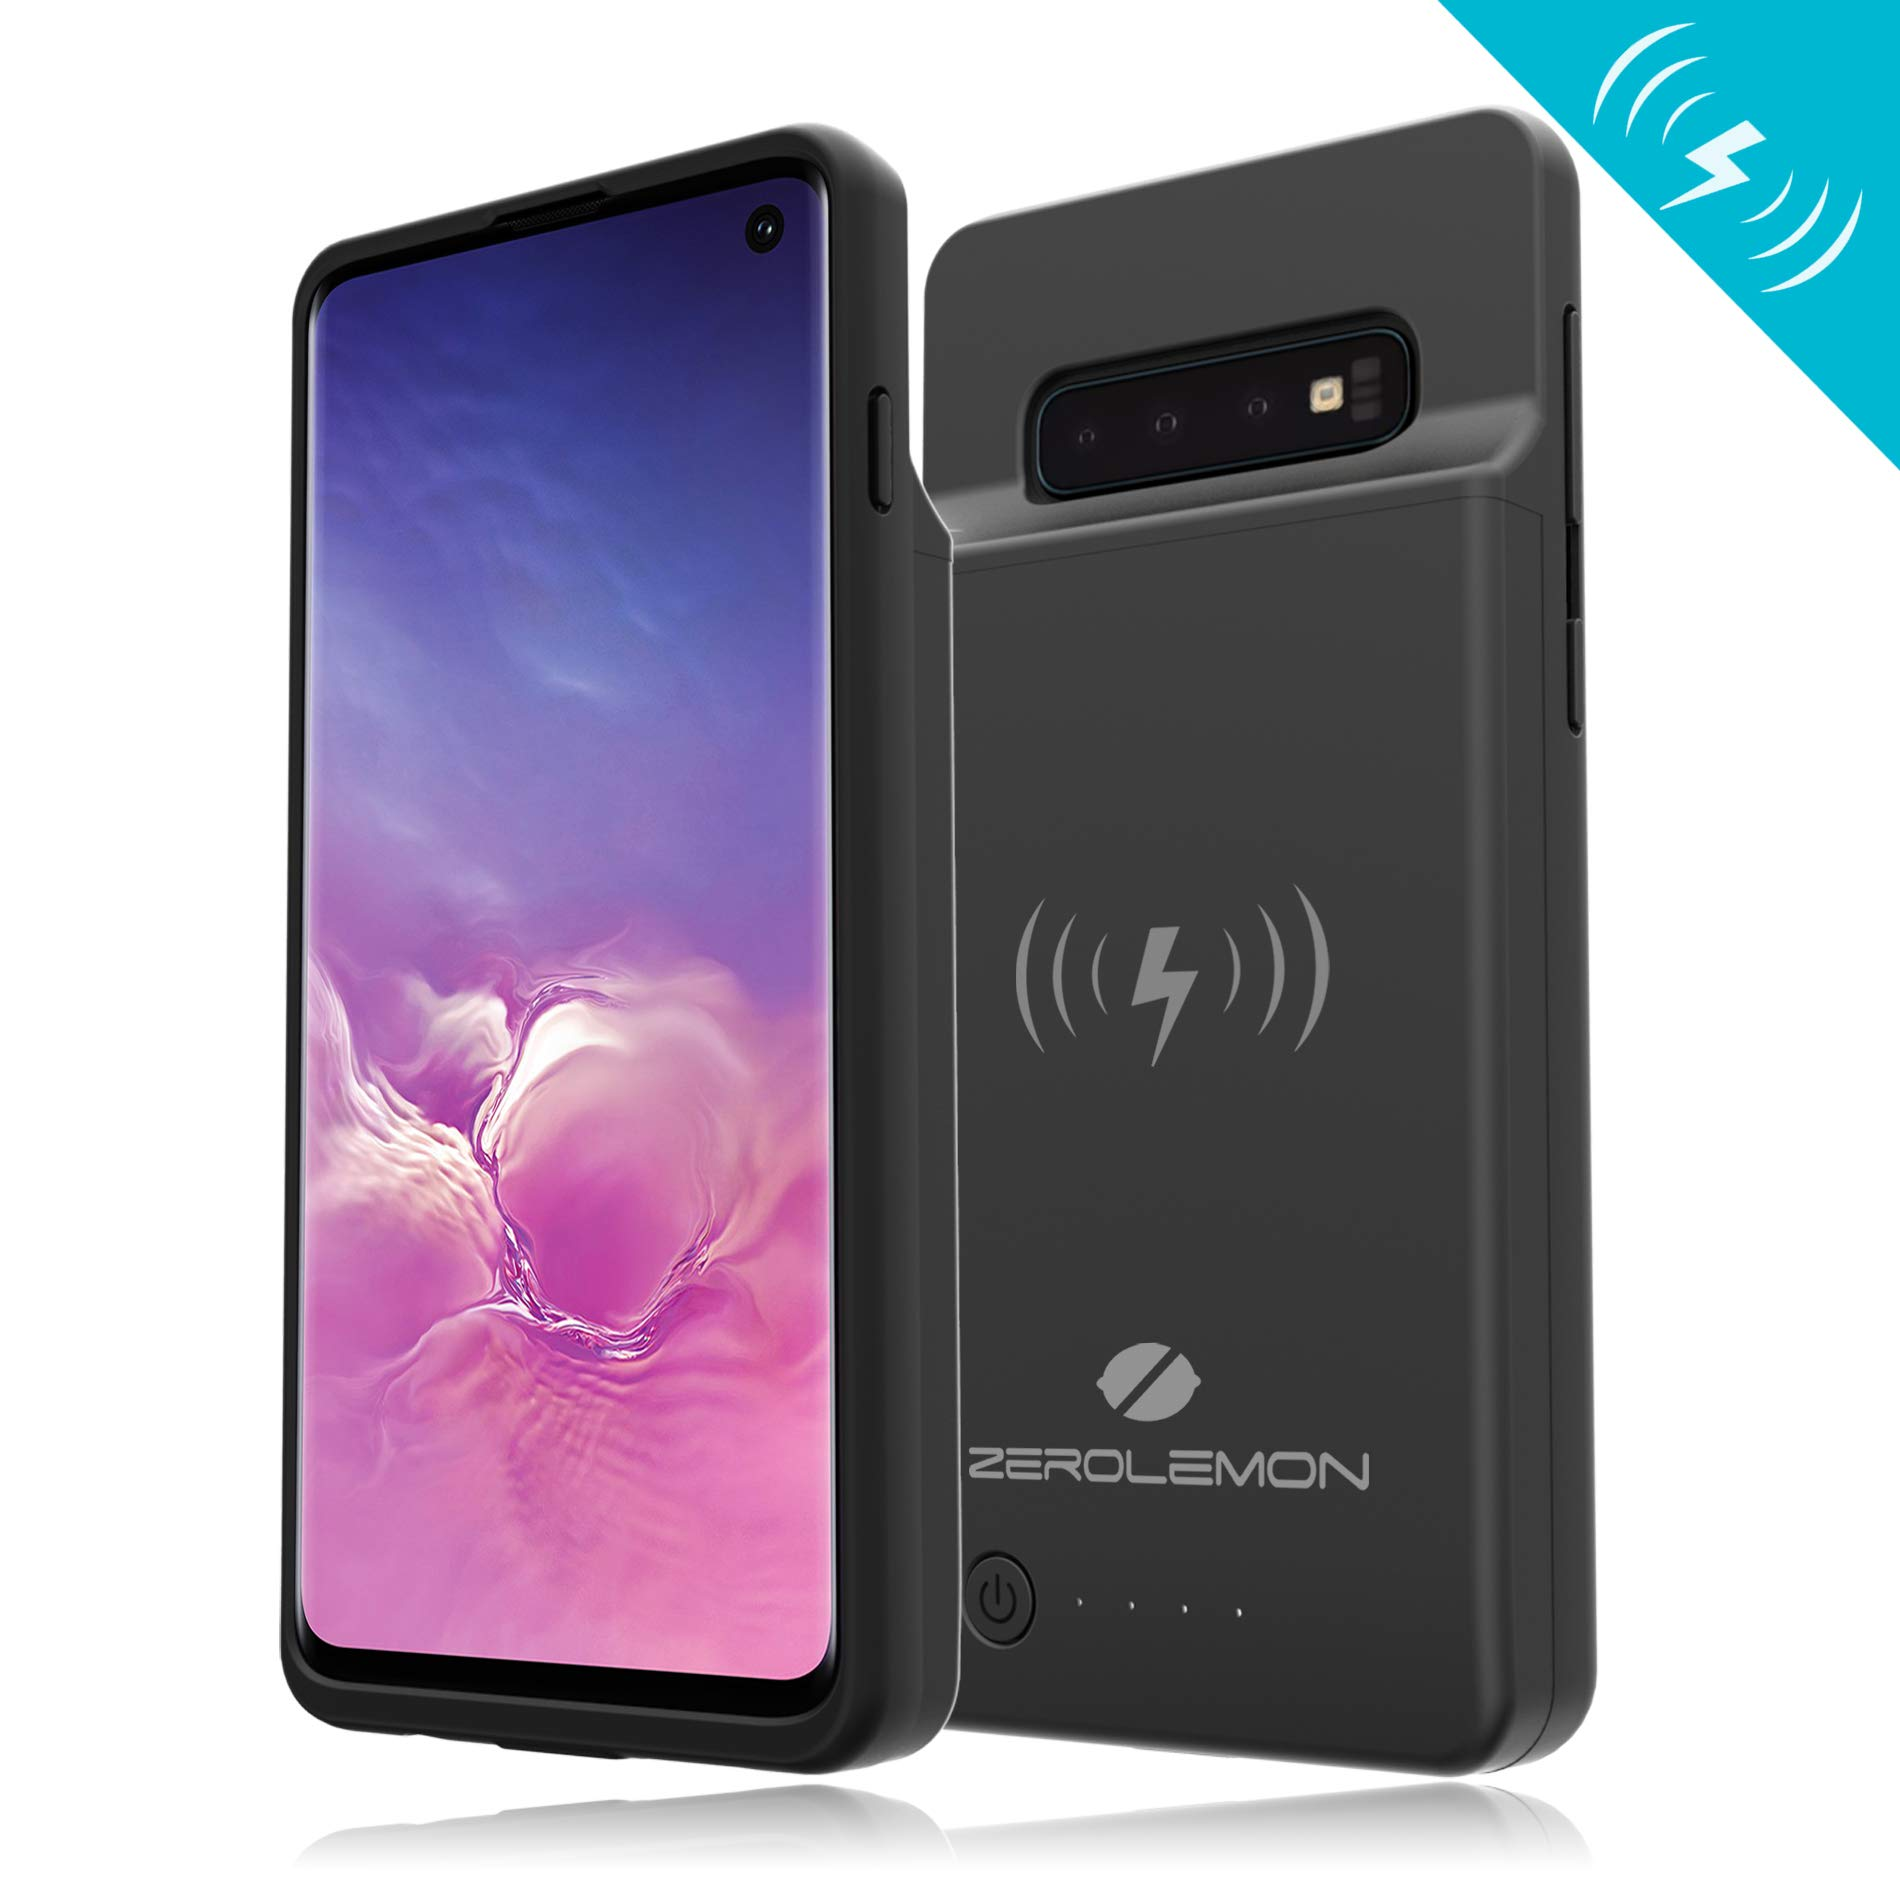 [Upgraded] Galaxy S10 Extended Battery Case with Qi Wireless Charging, ZeroLemon Slim Power 5000mAh Rechargeable Battery Charger with Full Edge Protection for Galaxy S10 - Black